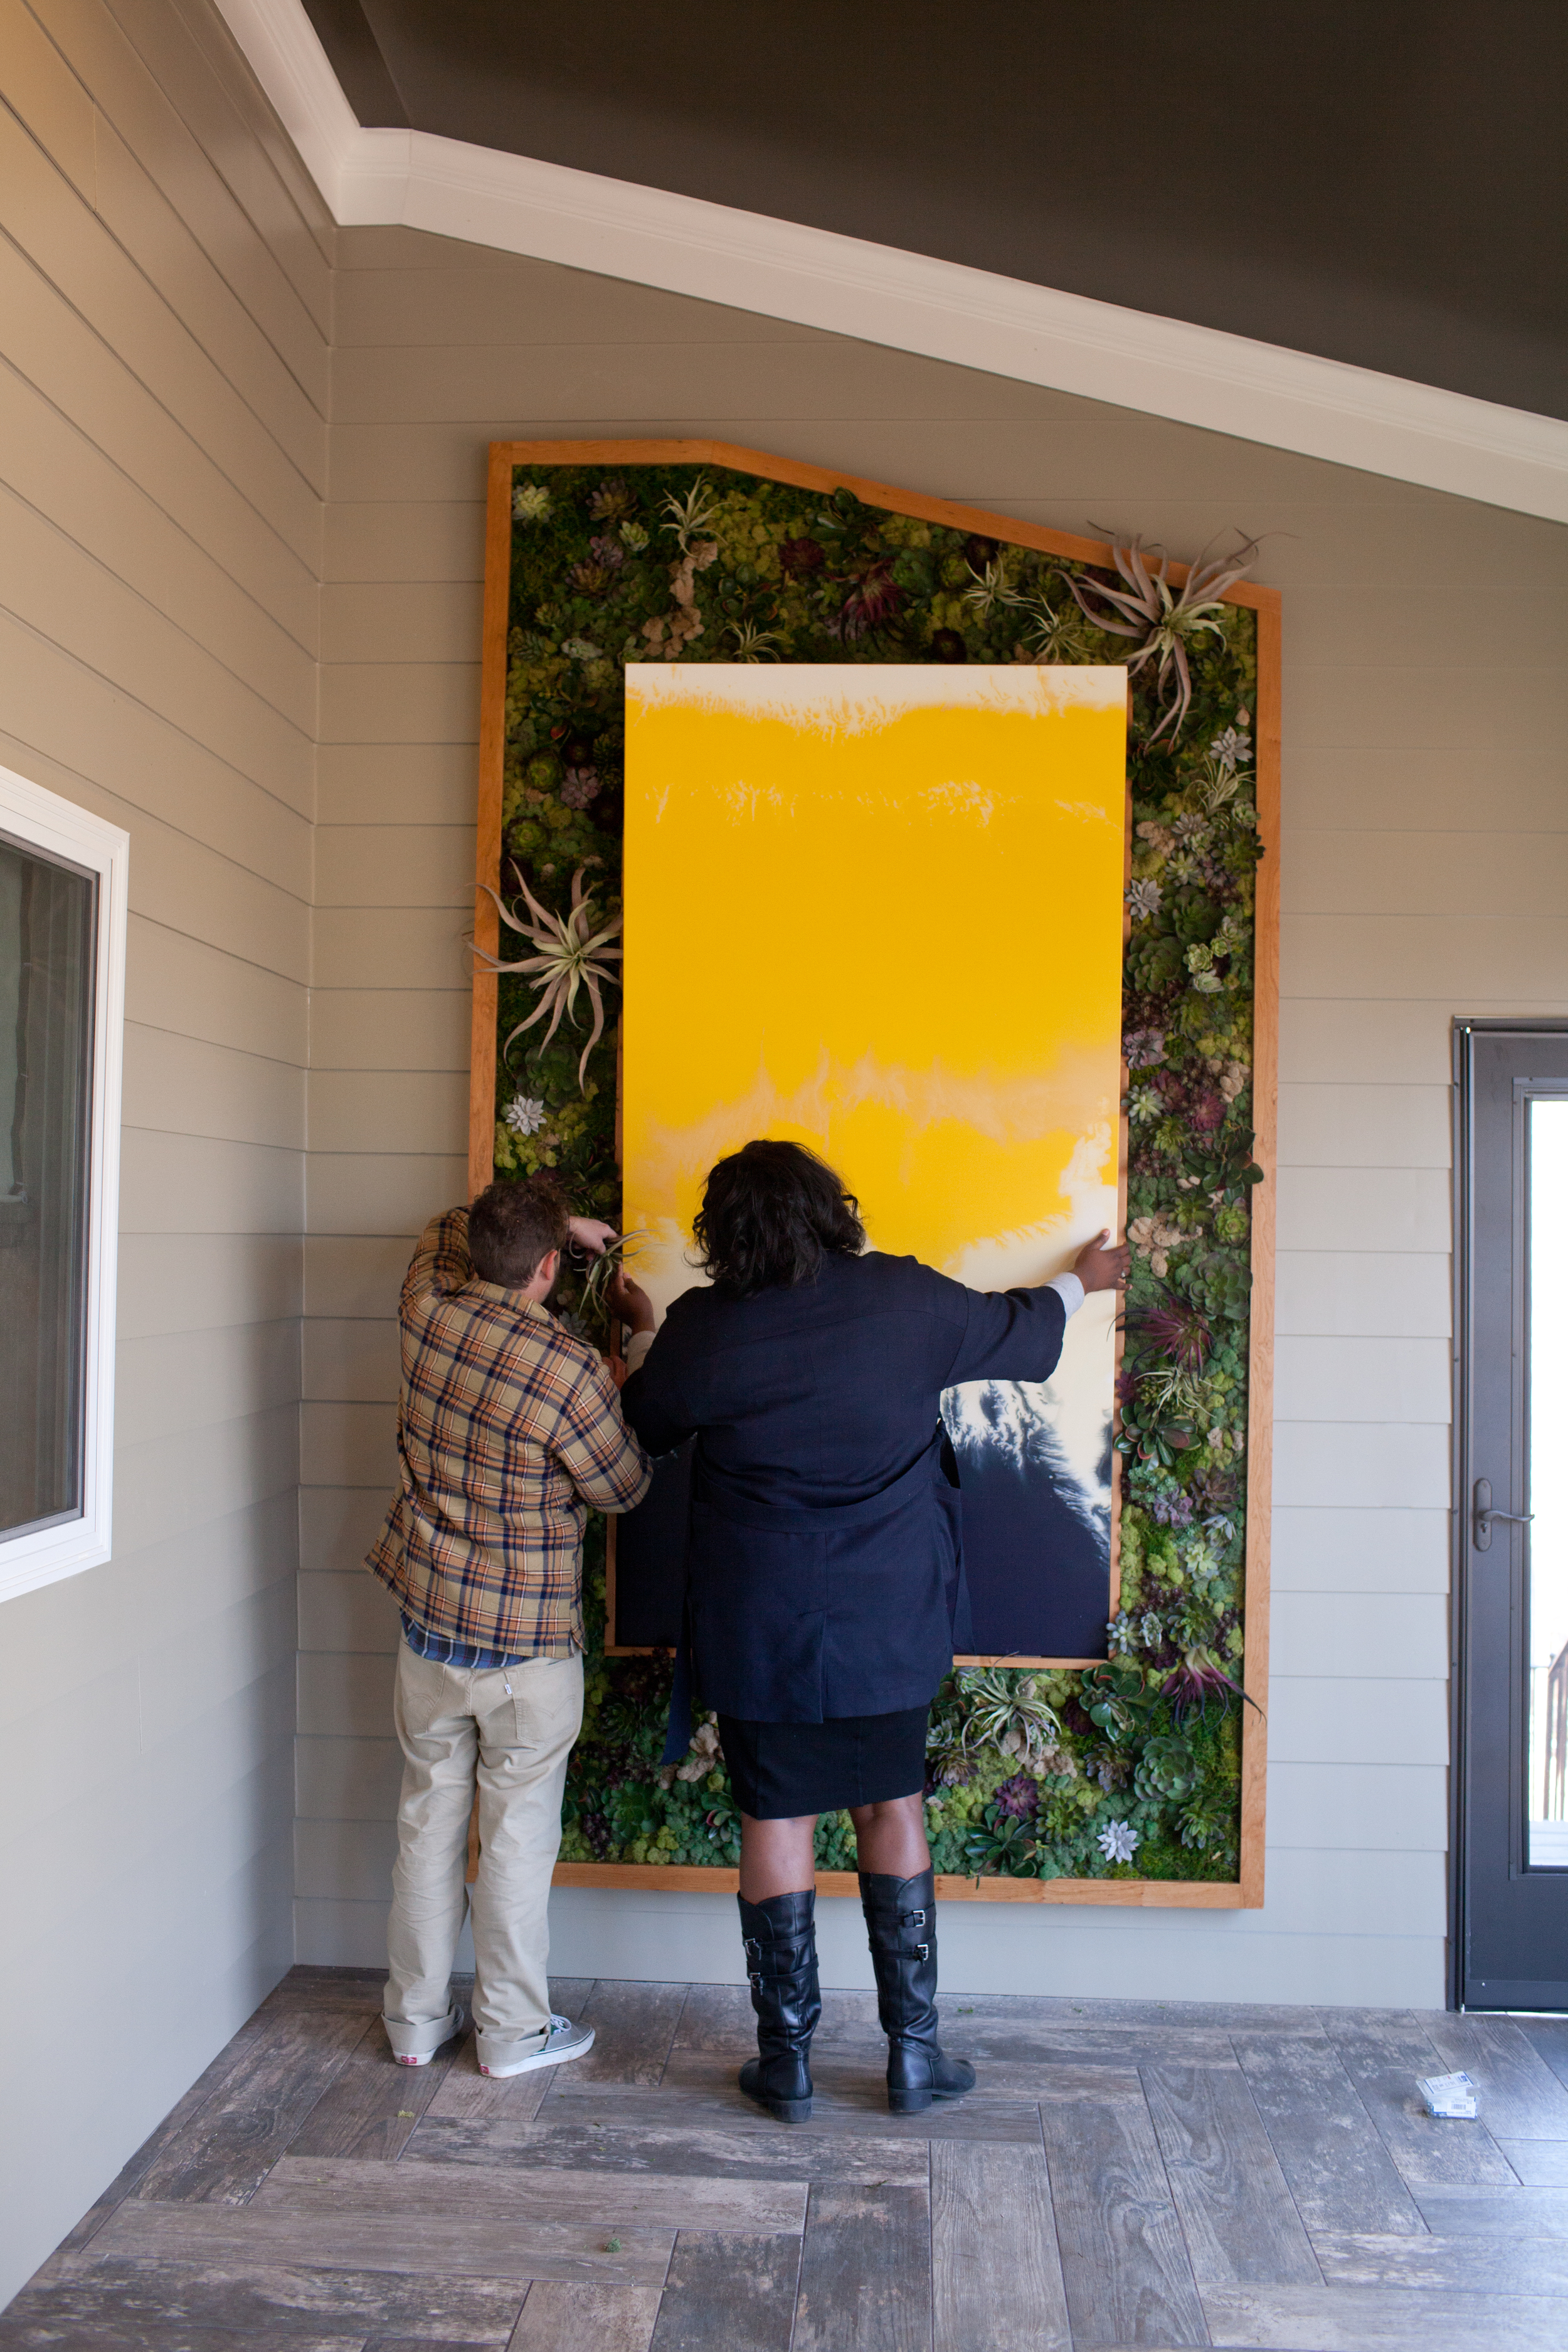 Installation: Creating Our Custom 'Living Wall' for the HGTV ... on living small house design, property brothers house design, dream home house design,